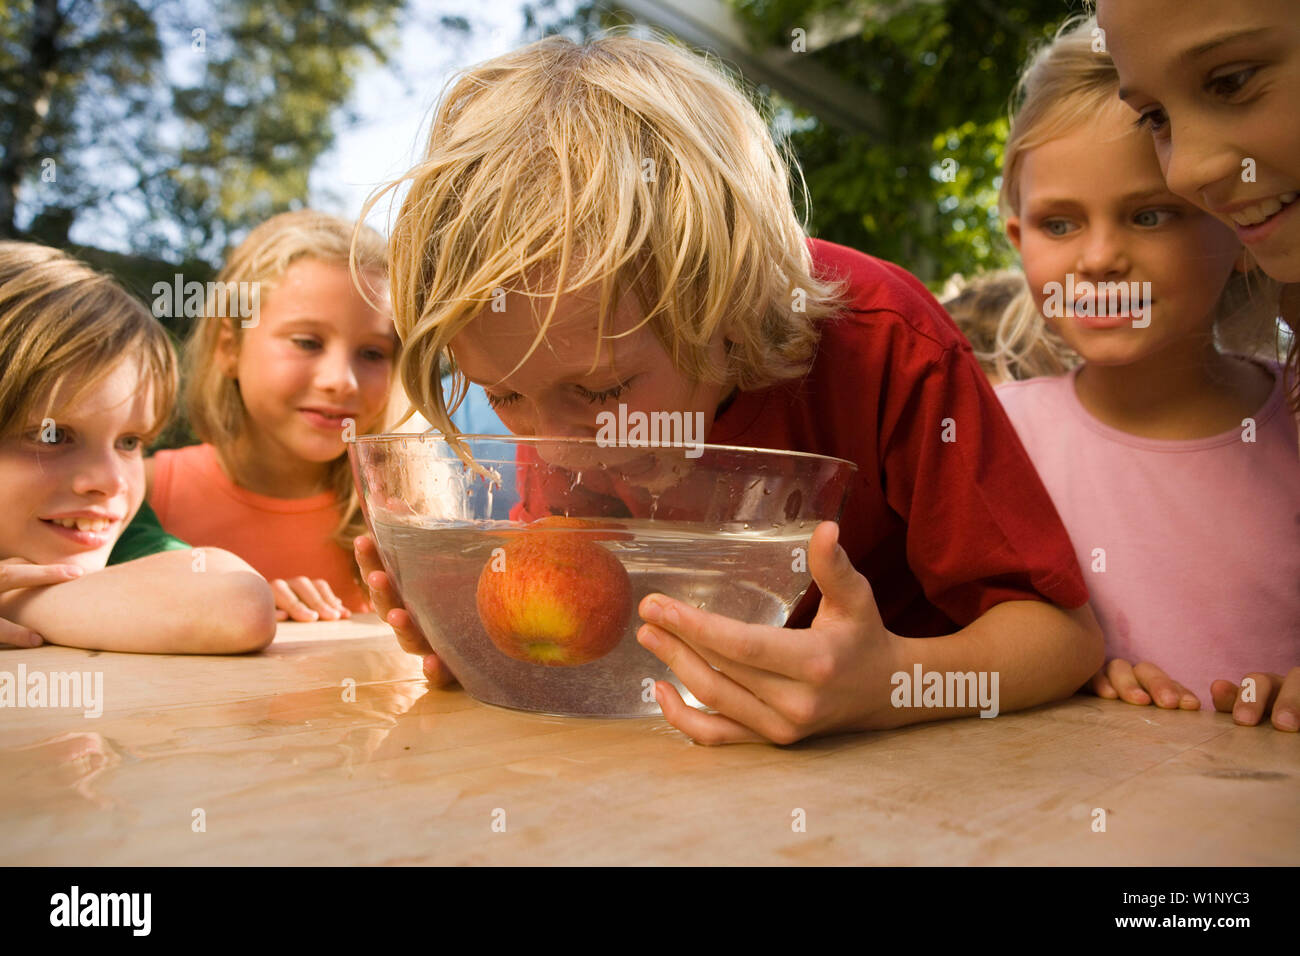 Boy trying to bite off an apple in a dish with water, children's birthday party - Stock Image